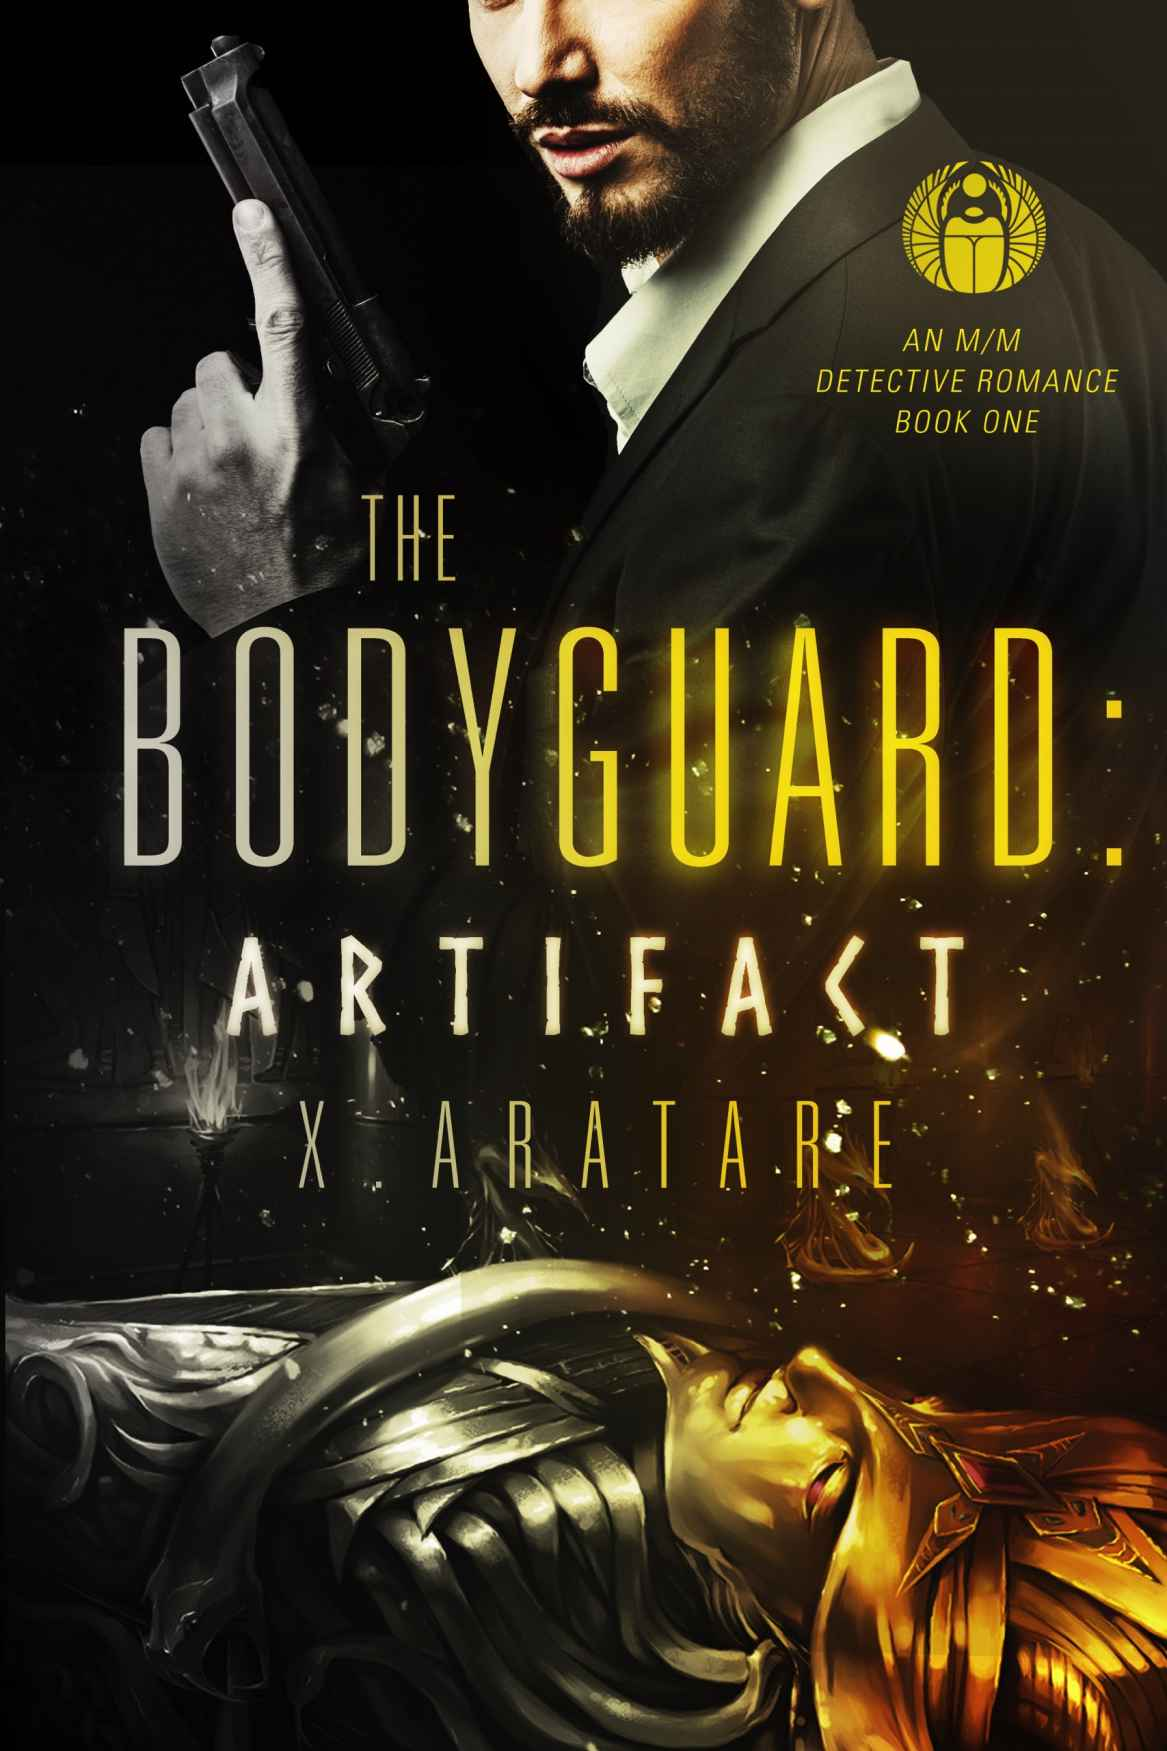 The Bodyguard (Book1 of The Artifact) by X. Aratare